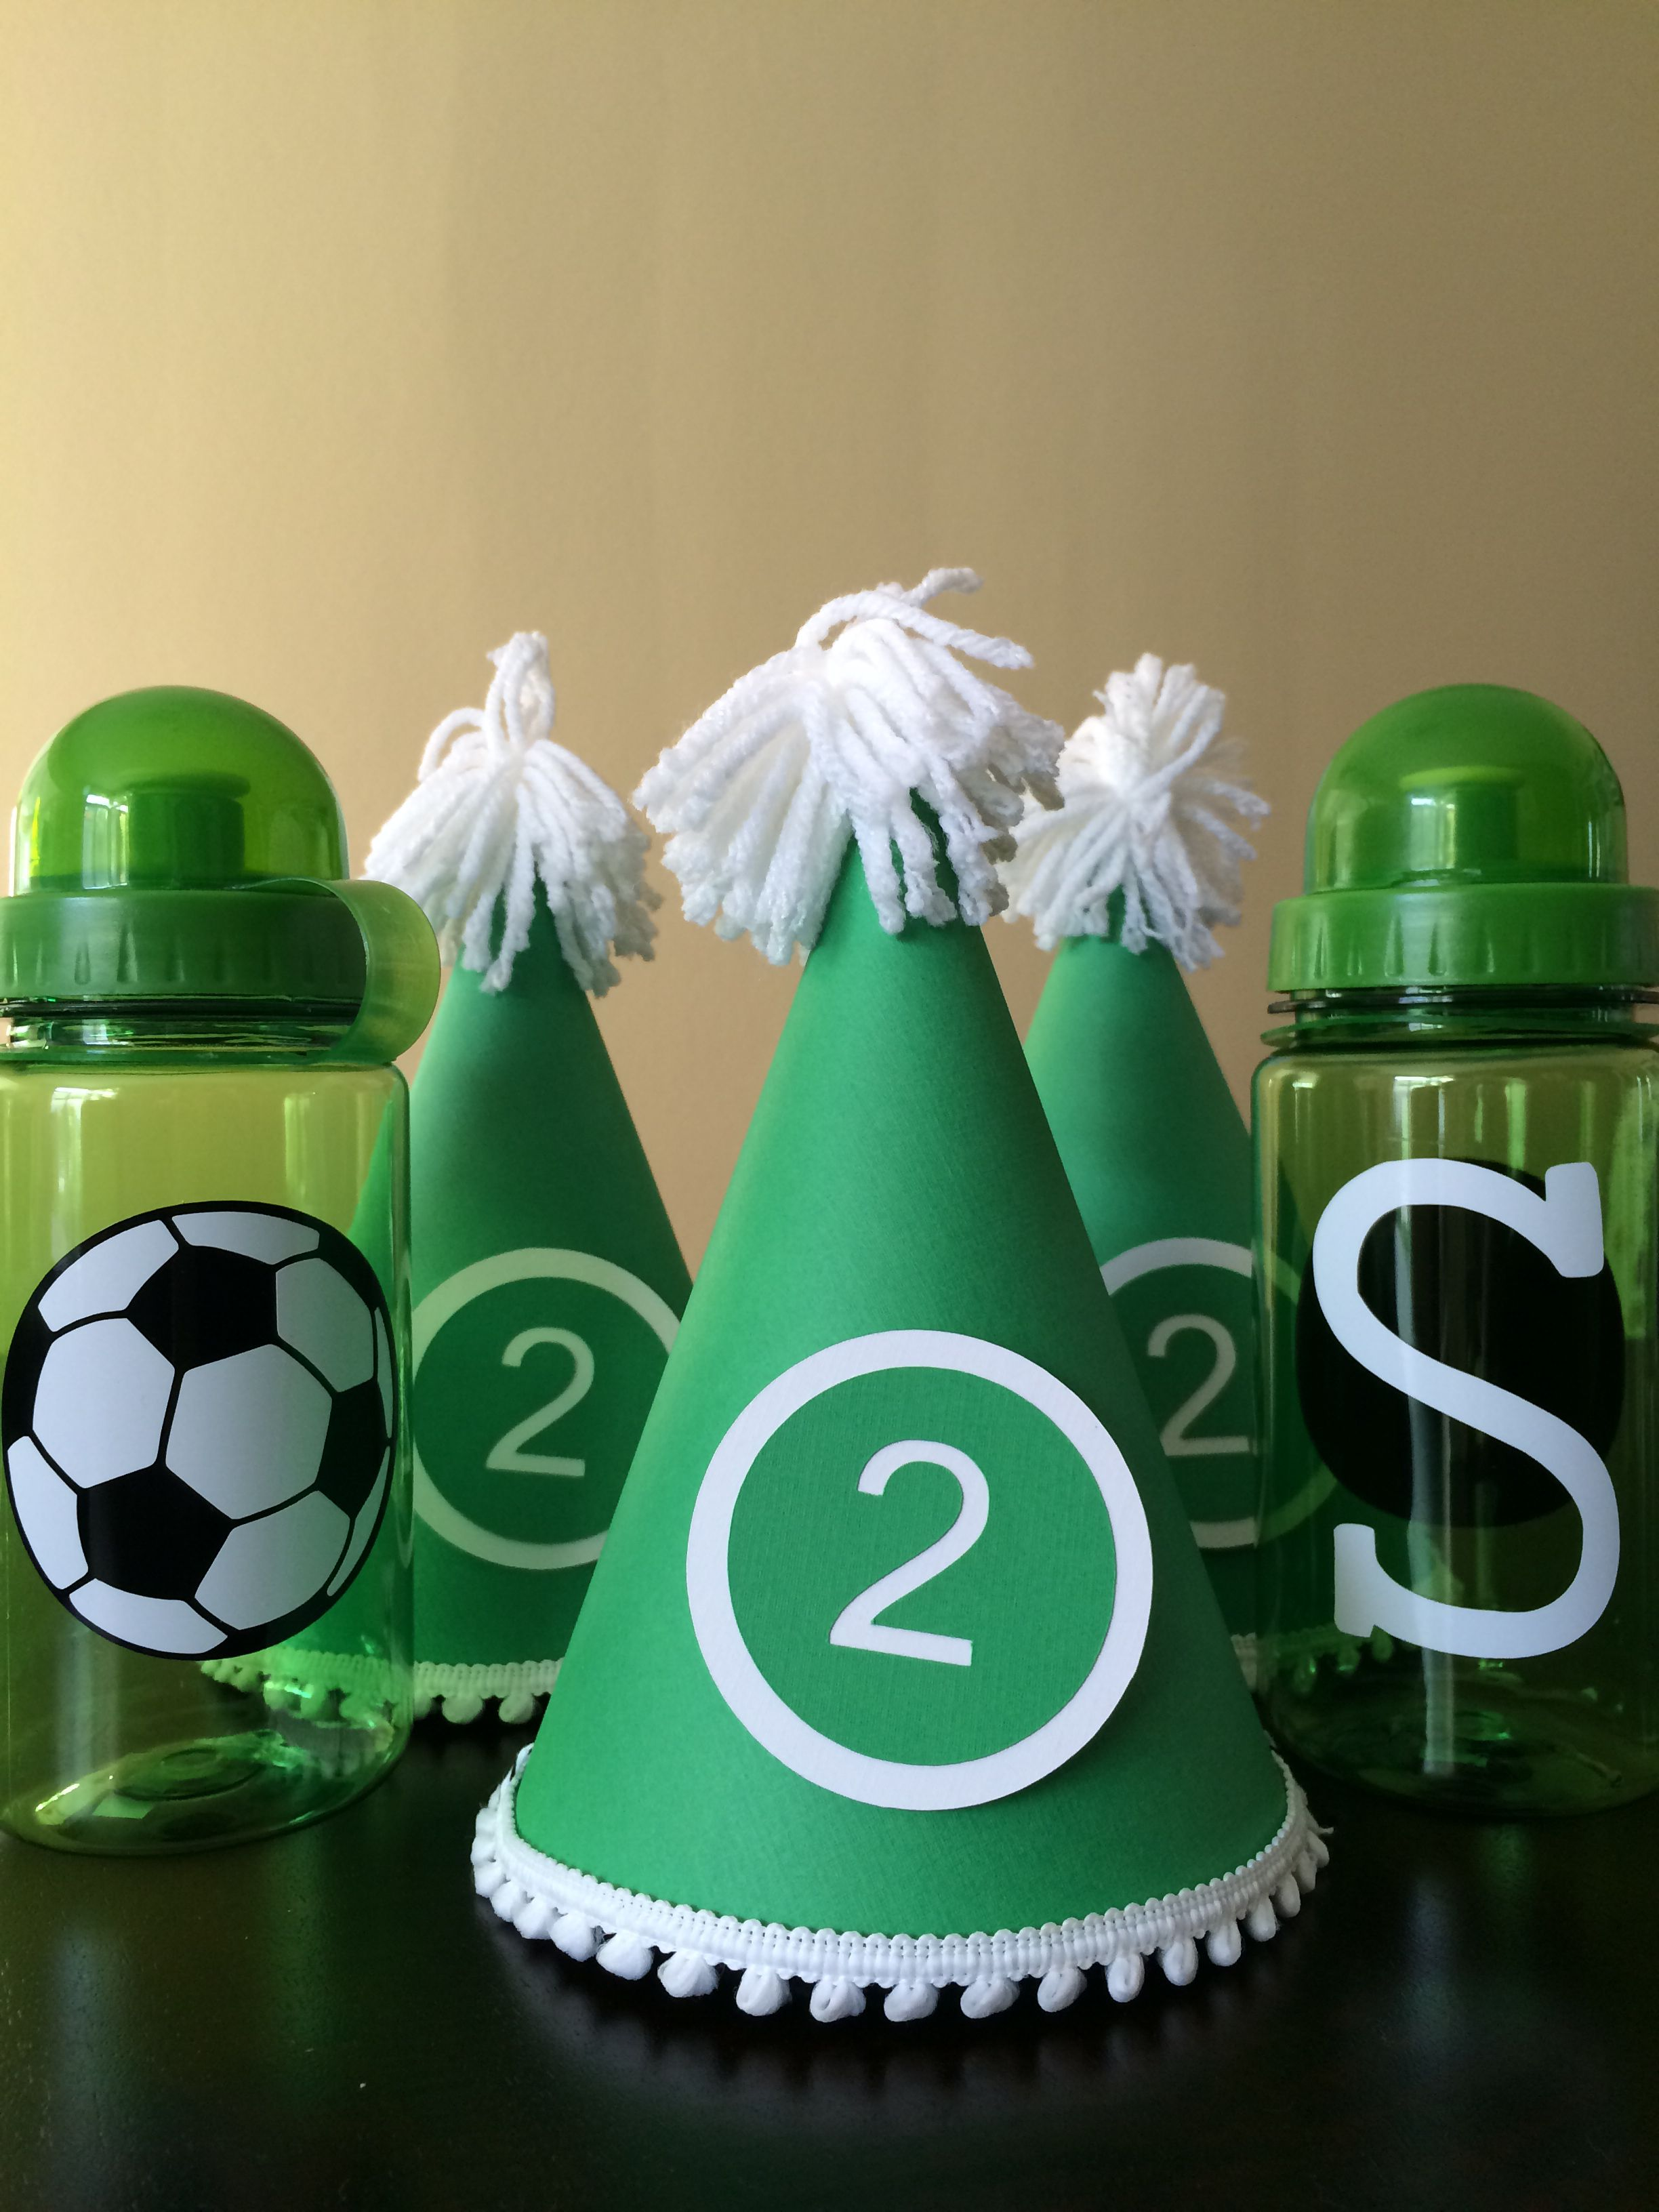 bcfad980e4e5cf The party hats and water bottle favor for the kids for my son's soccer  themed 2nd birthday -- each water bottle was labeled with the child's first  initial.